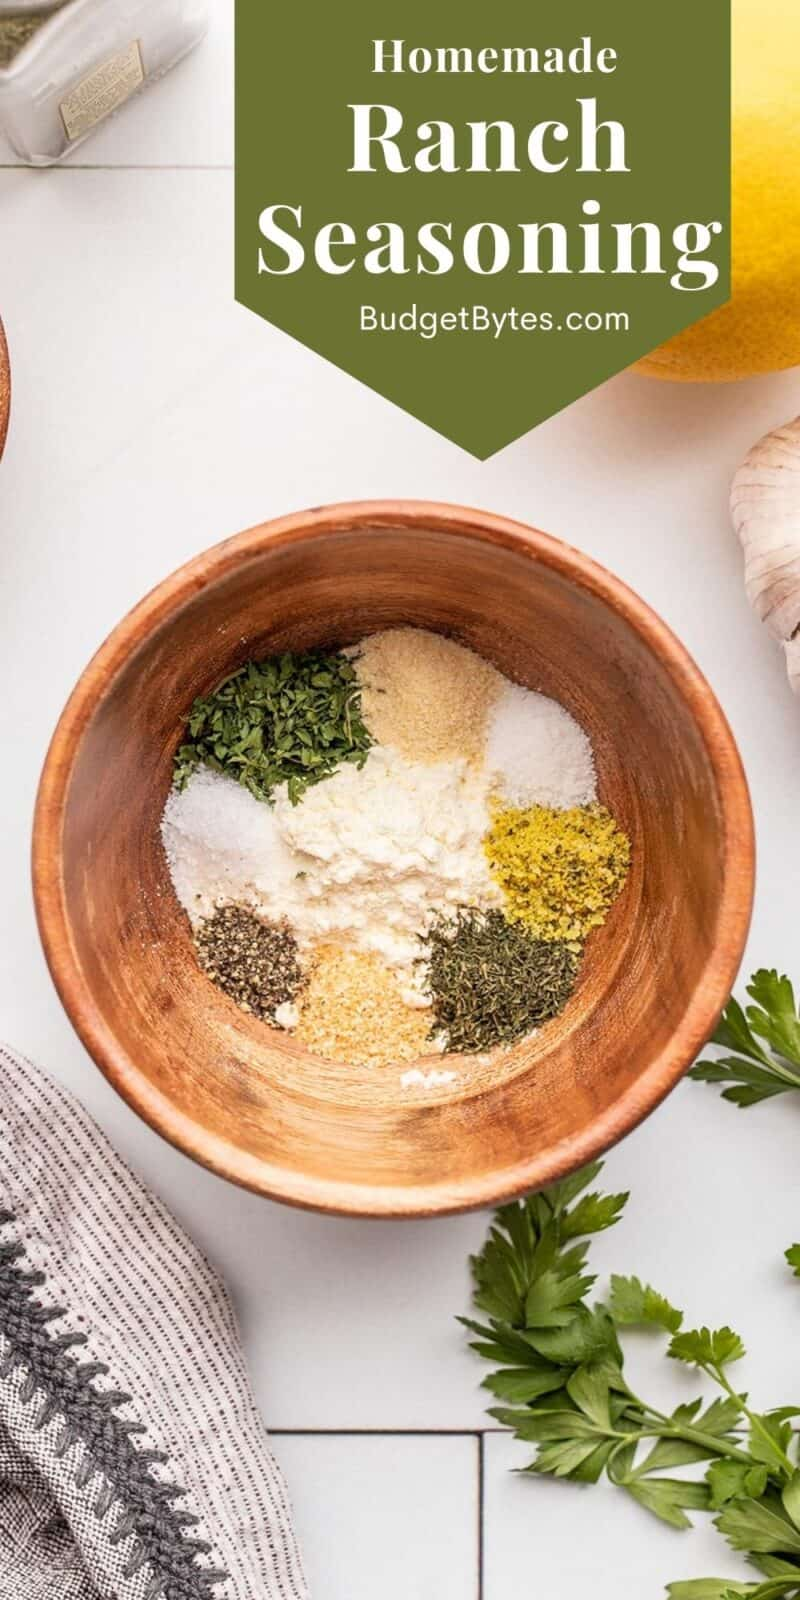 ranch seasoning ingredients in a wooden bowl, title text at the top